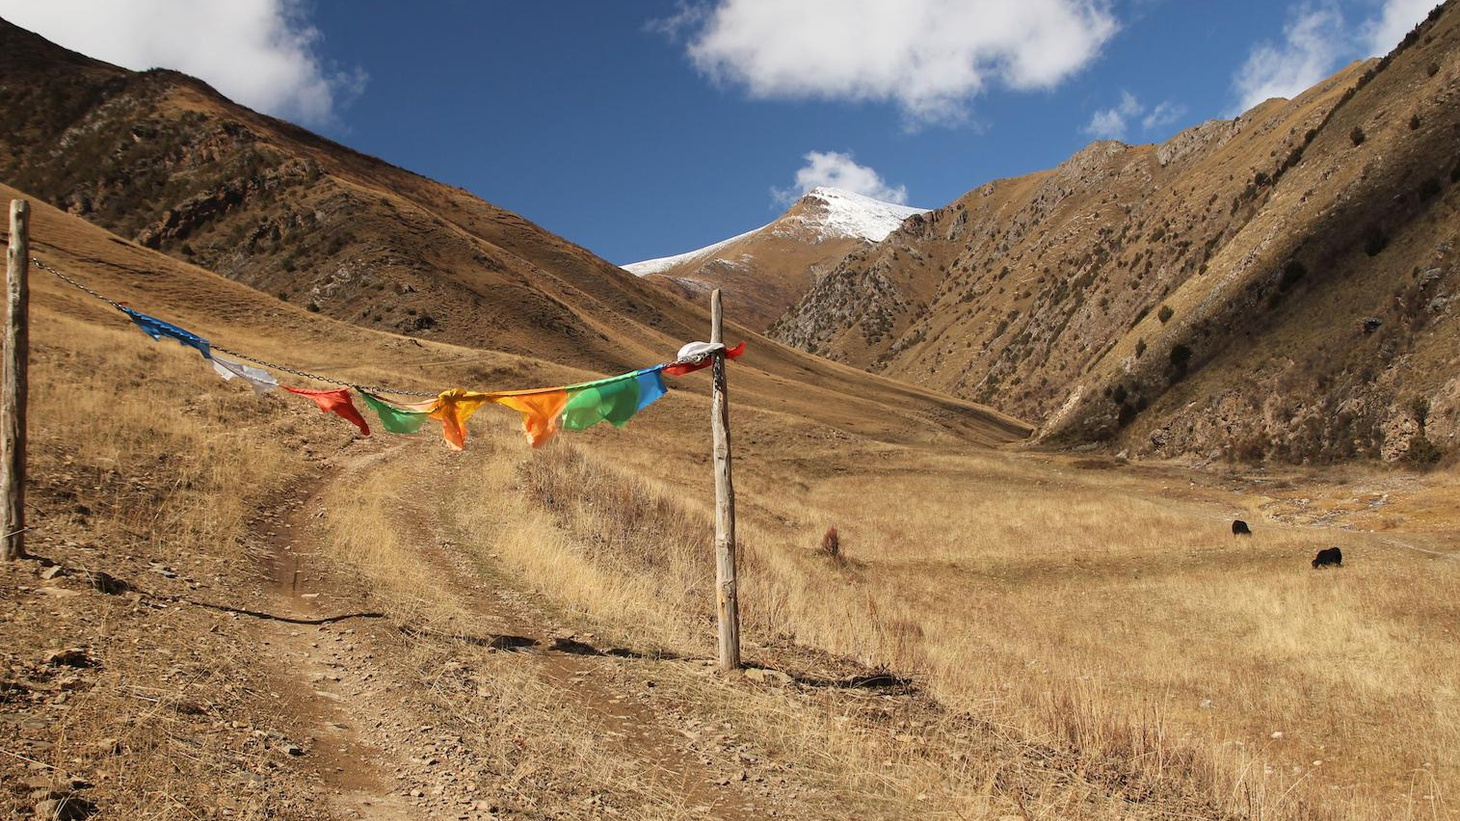 To the nomads of of the Tibetan Plateau, change is part of life and if you've got a yak, you've got everything you need.